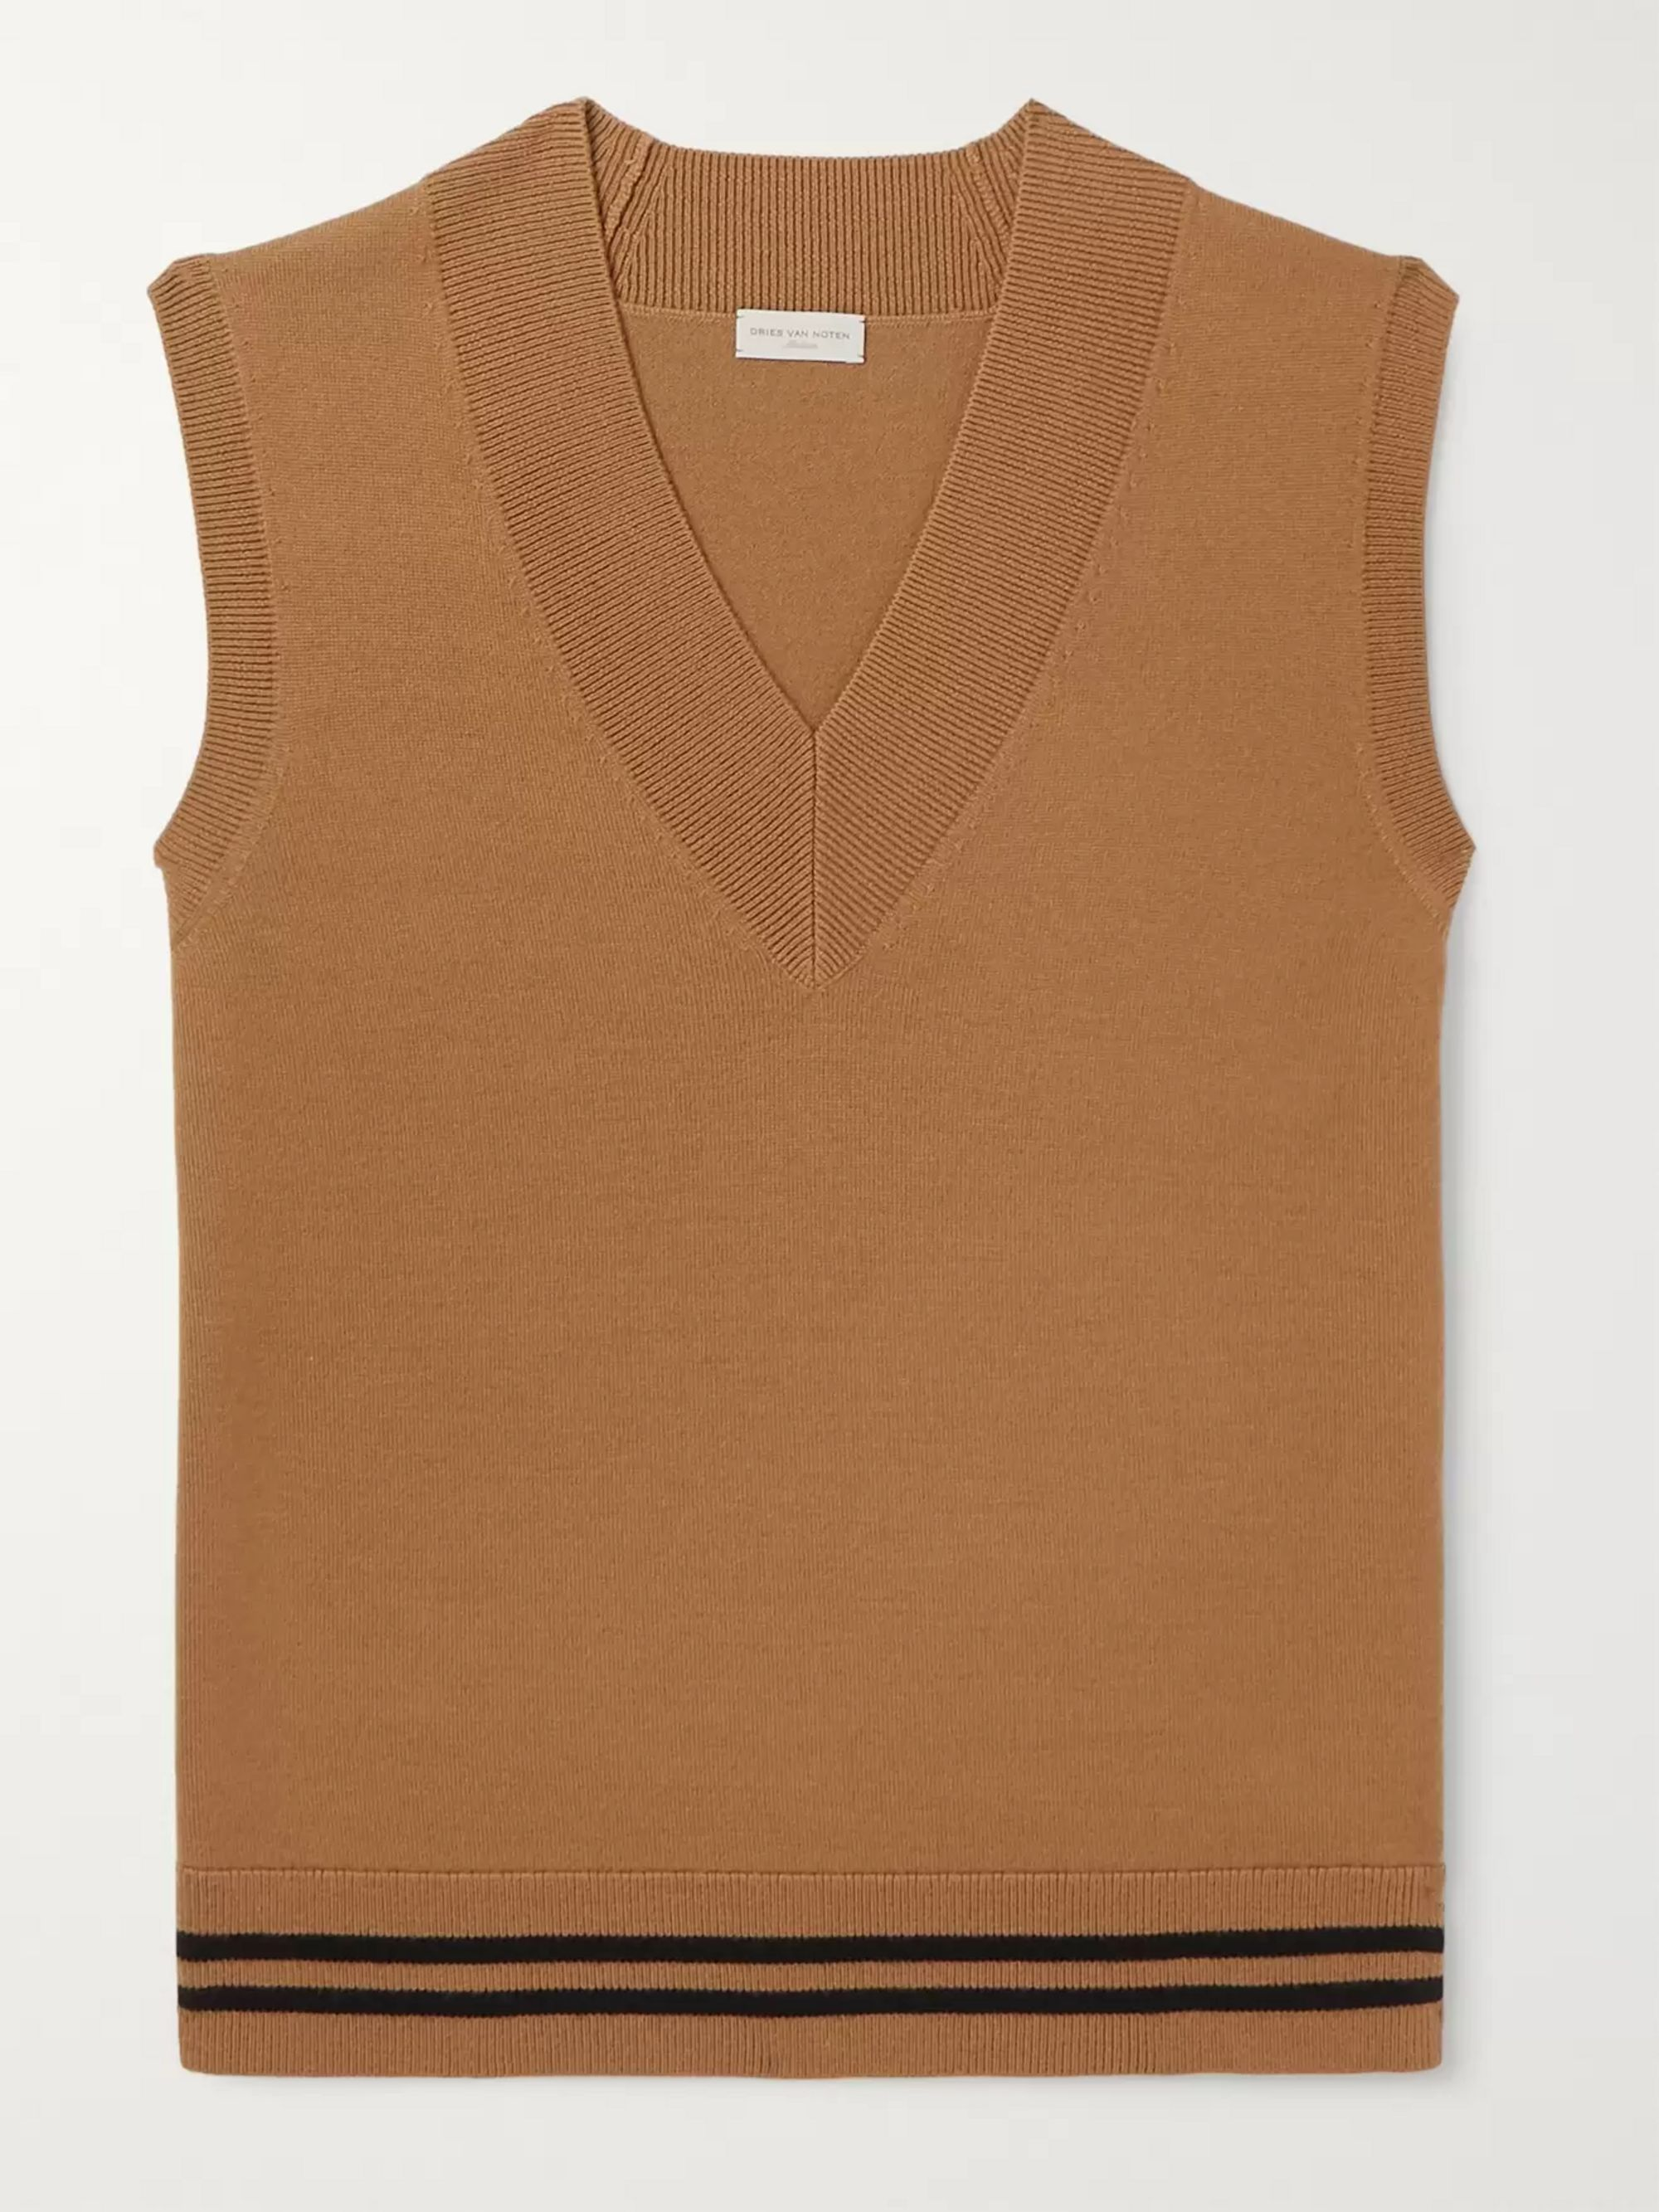 Striped Merino Wool Sweater Vest by Dries Van Noten